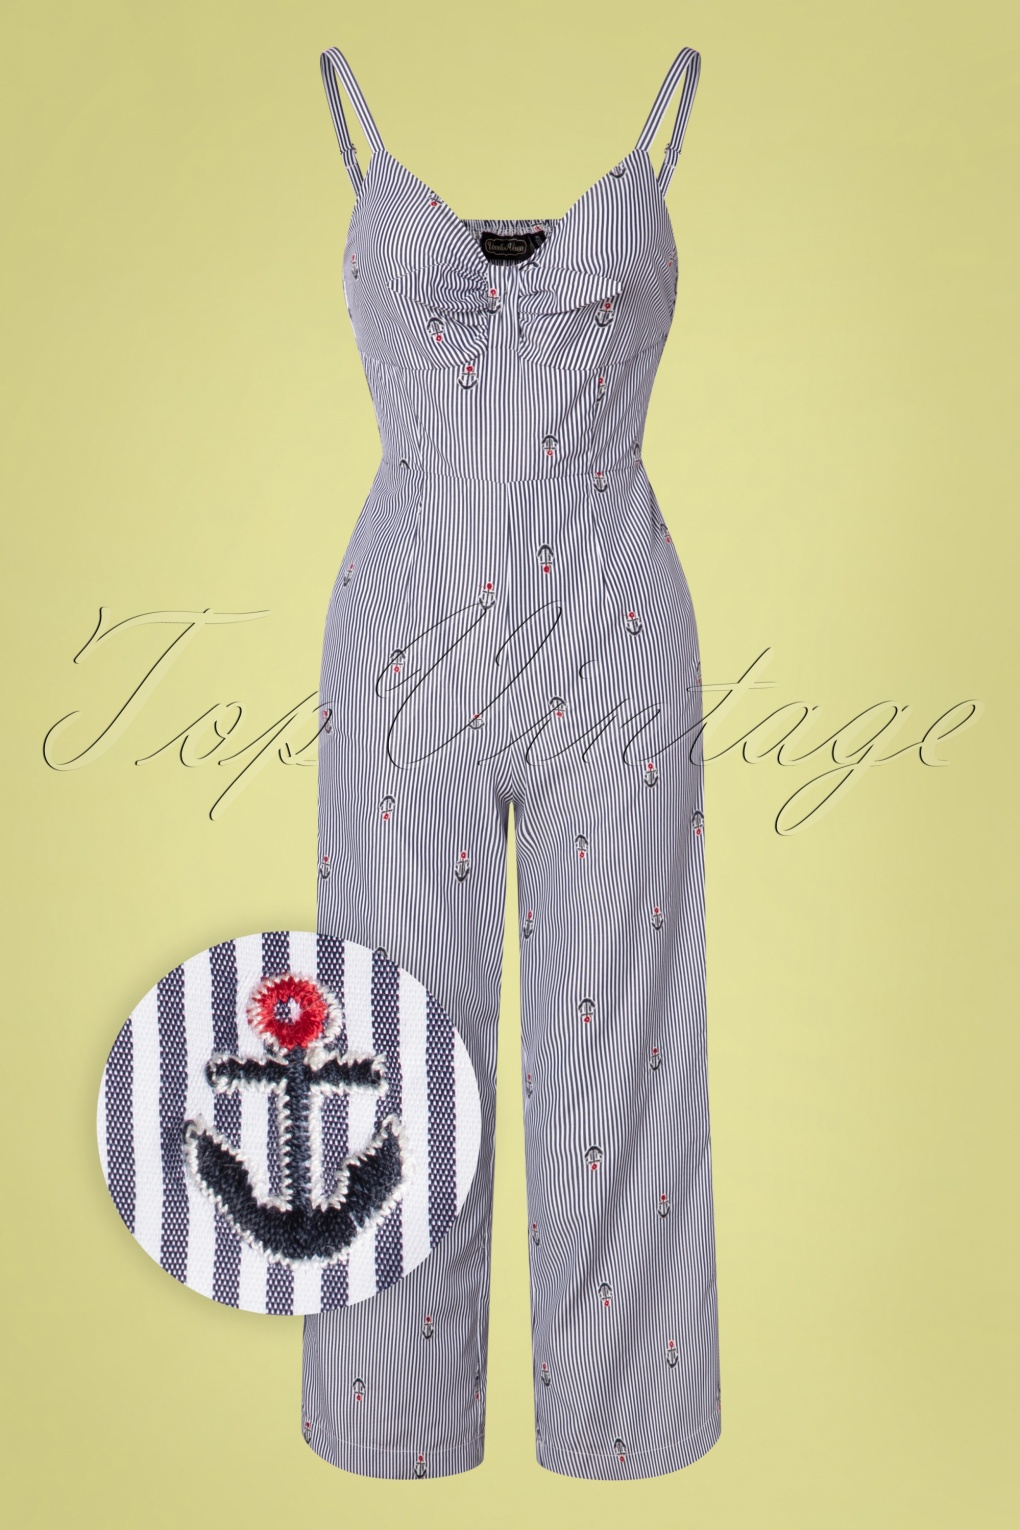 Vintage Overalls 1910s -1950s History & Shop Overalls 50s Andy Anchor Jumpsuit in Blue £62.45 AT vintagedancer.com